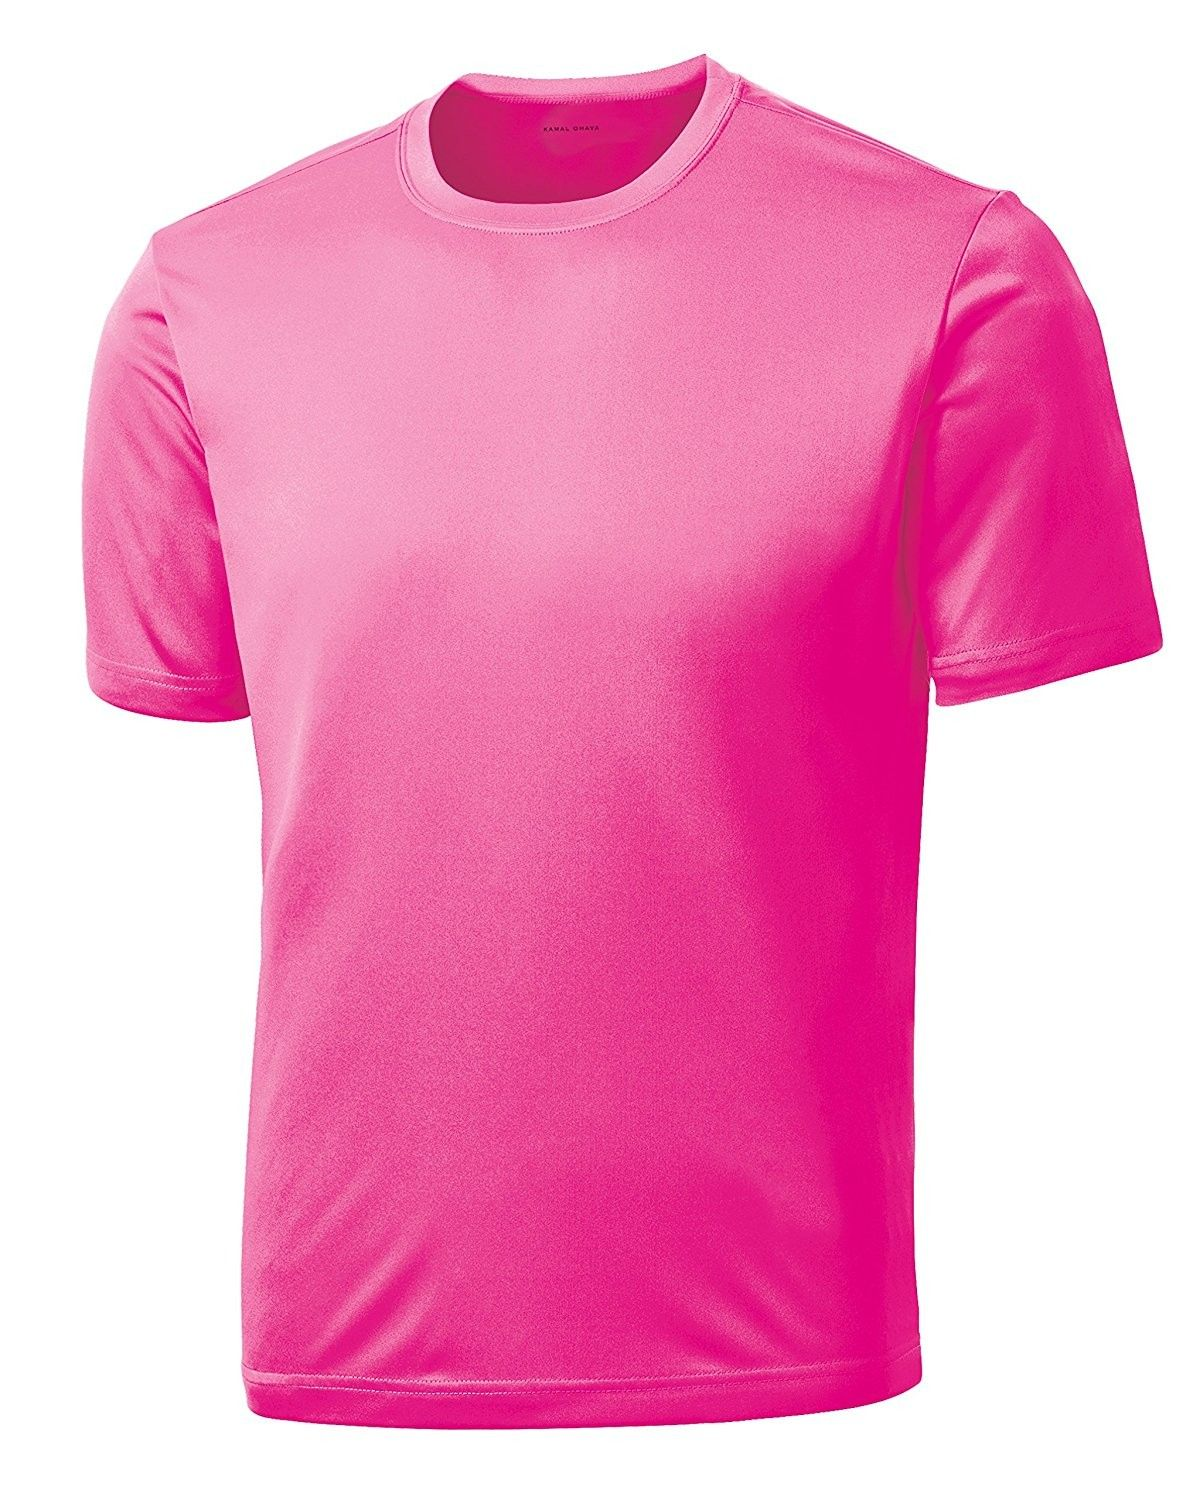 7856d5d2 Men's Clothing, Active, Active Shirts & Tees,Men's Dri-Cool Athletic  Performance Tee Shirt - Neon Pink - CH12FCD7GJJ #Fashion #Active #men  #shopping #style ...